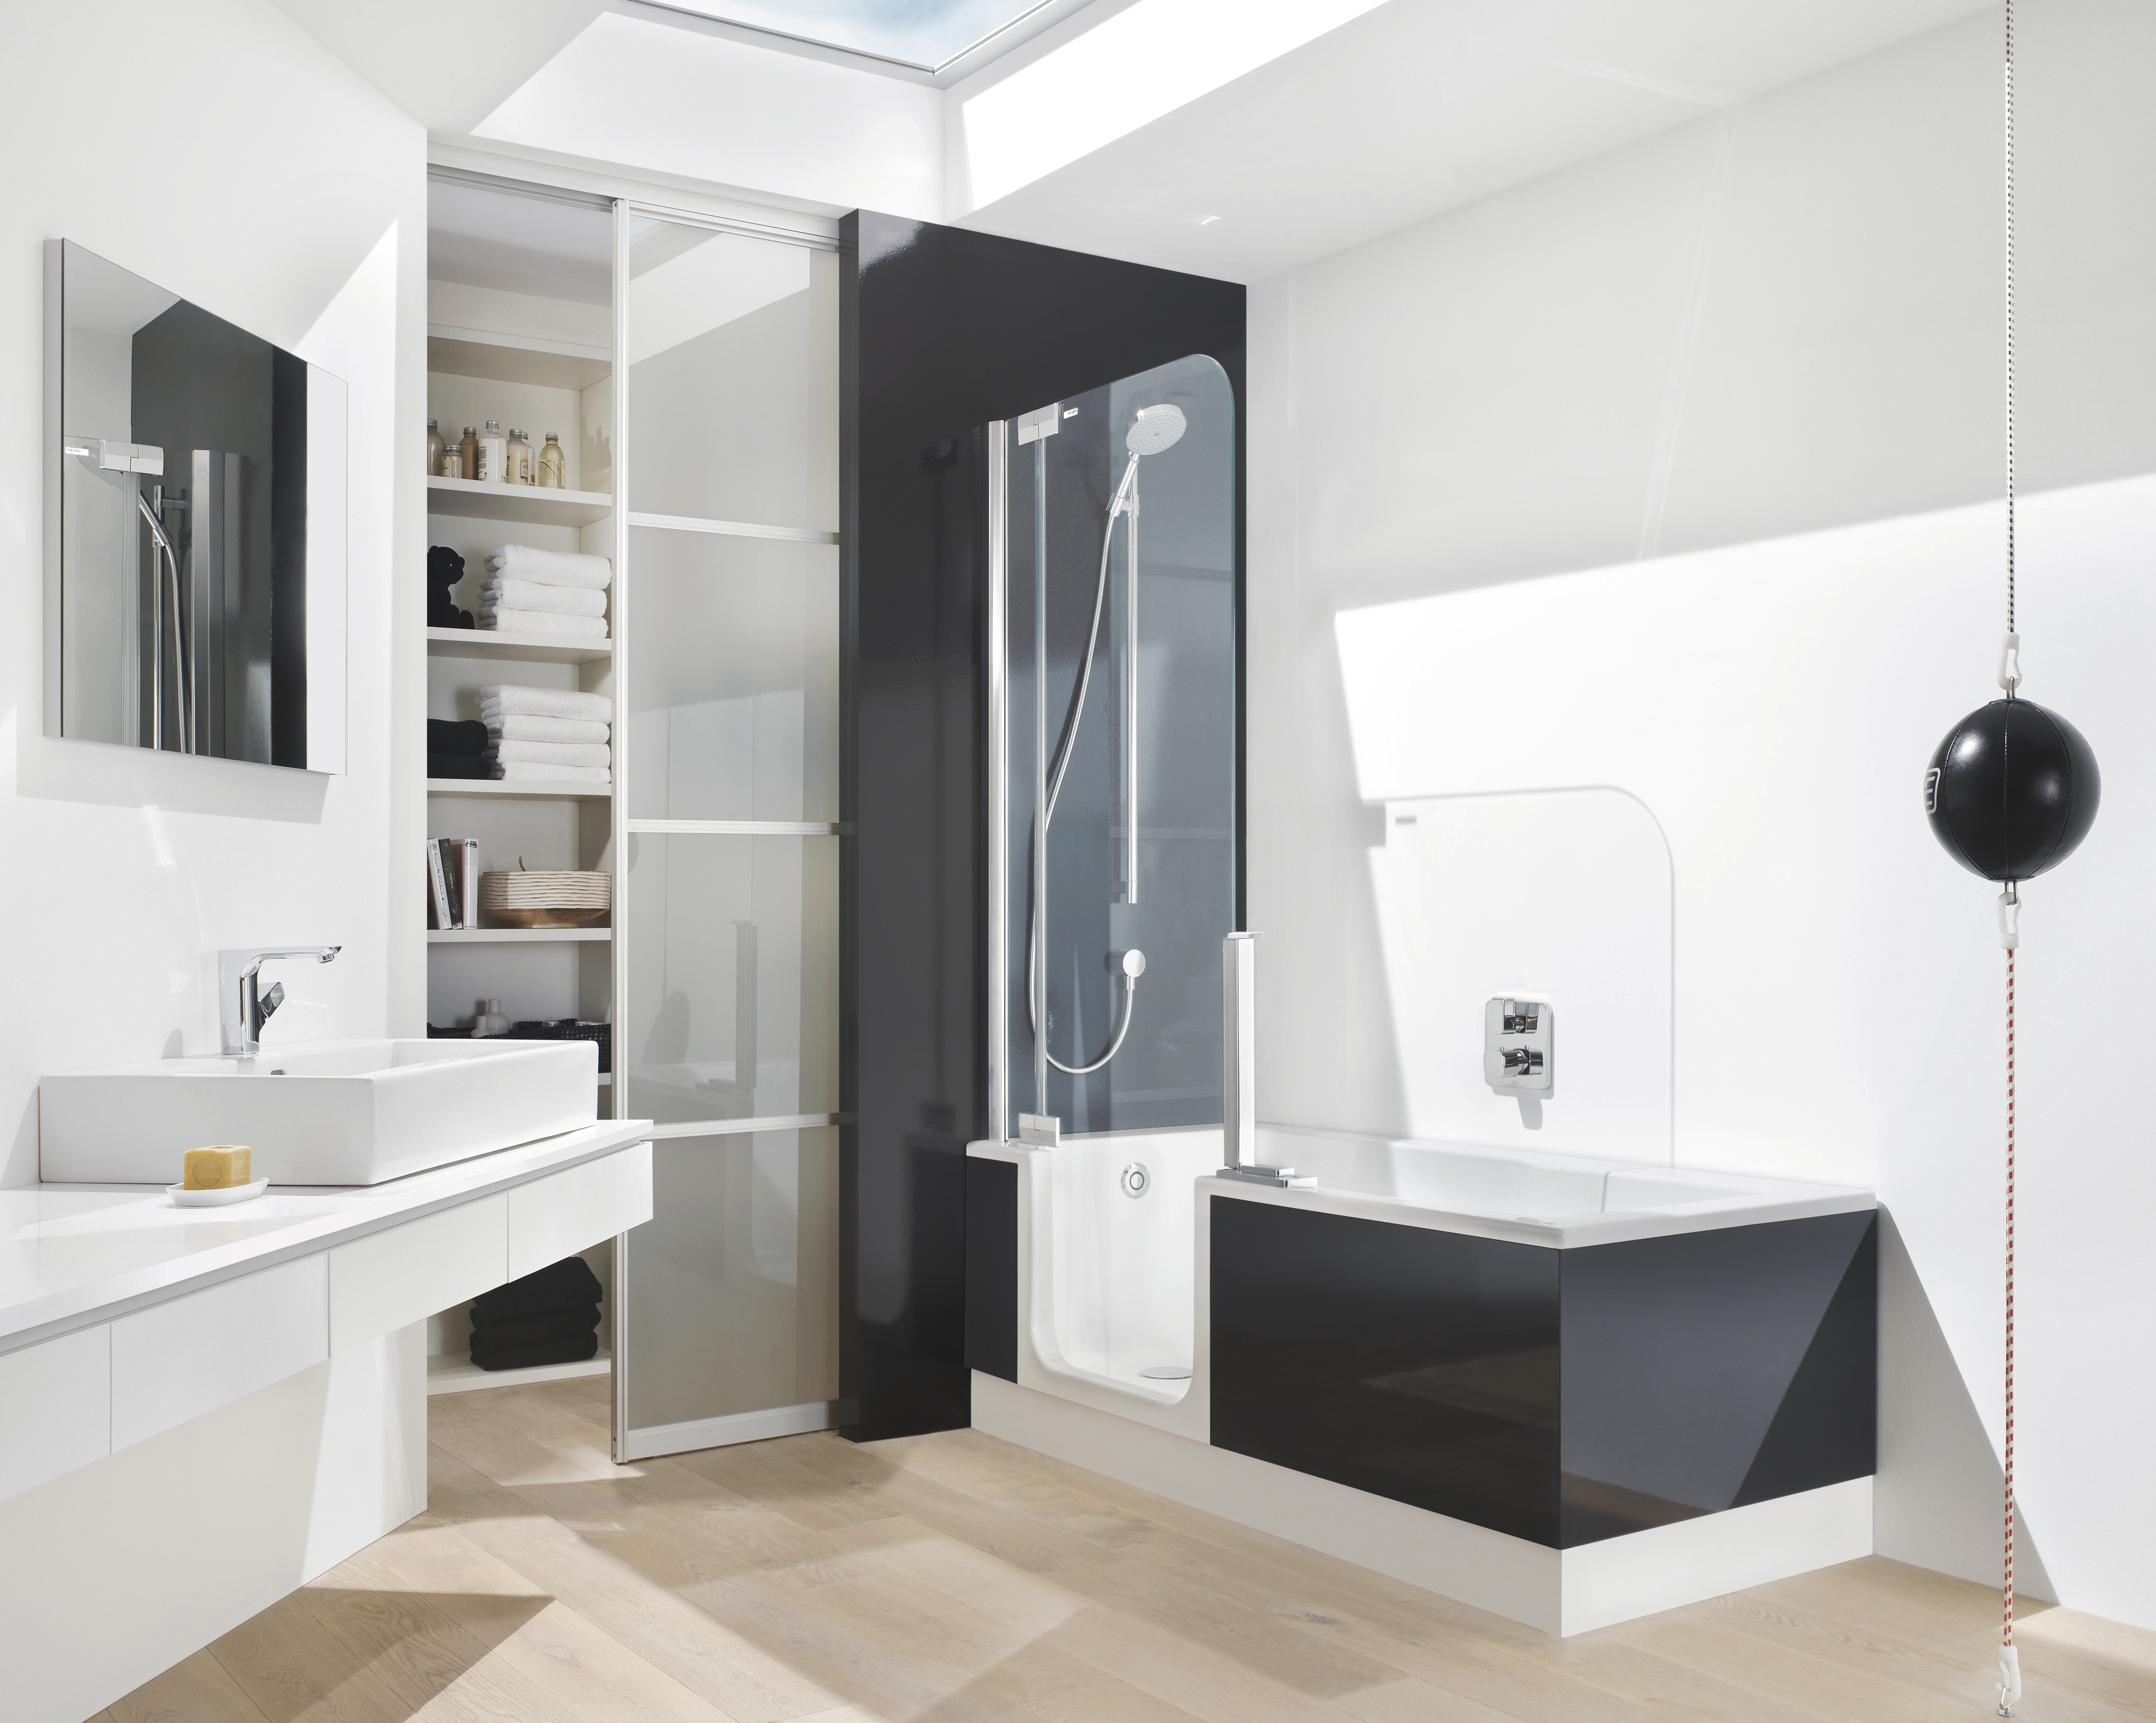 Extraordinary Sliding Closet Doors With Glass Divider And Modern Walk In Shower Black For White Bathroom Decor Pertaining To Black Closet Doors